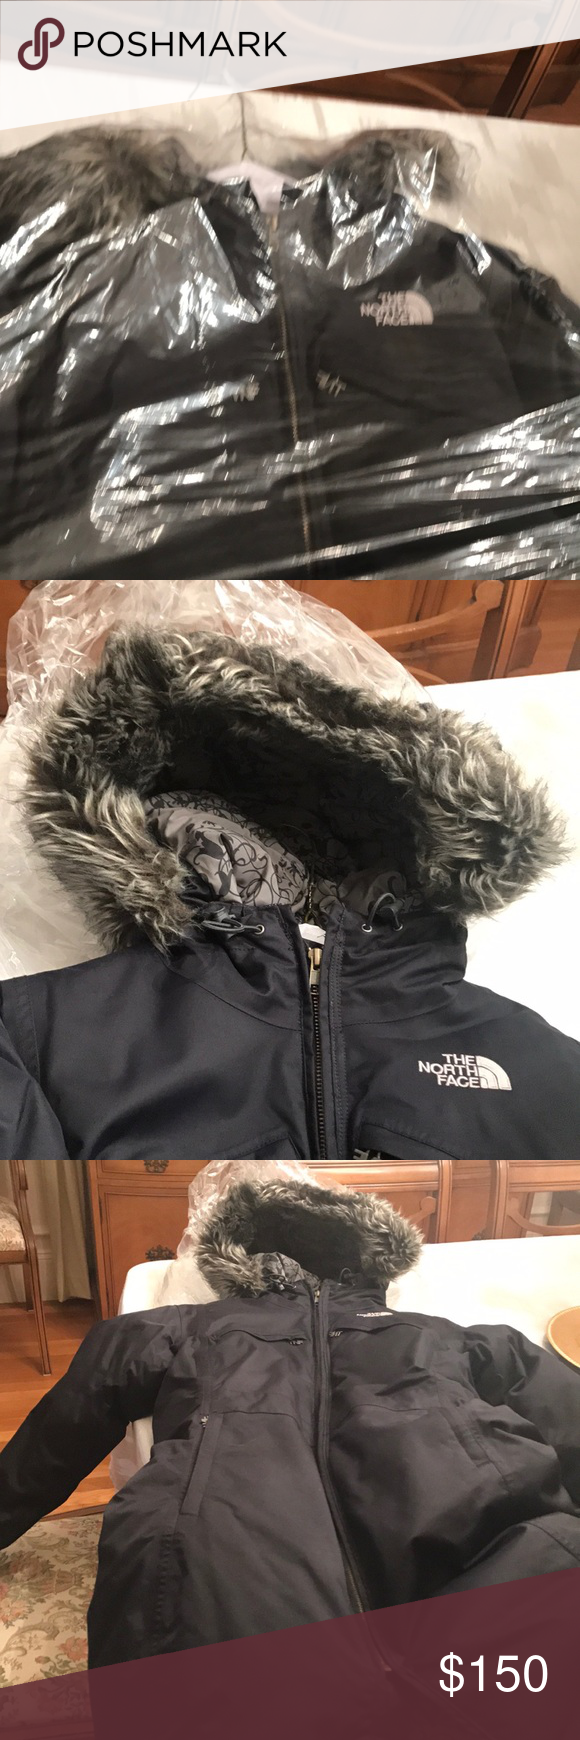 Women S North Face Jacket North Face Jacket Womens Black North Face Jacket North Face Jacket [ 1740 x 580 Pixel ]